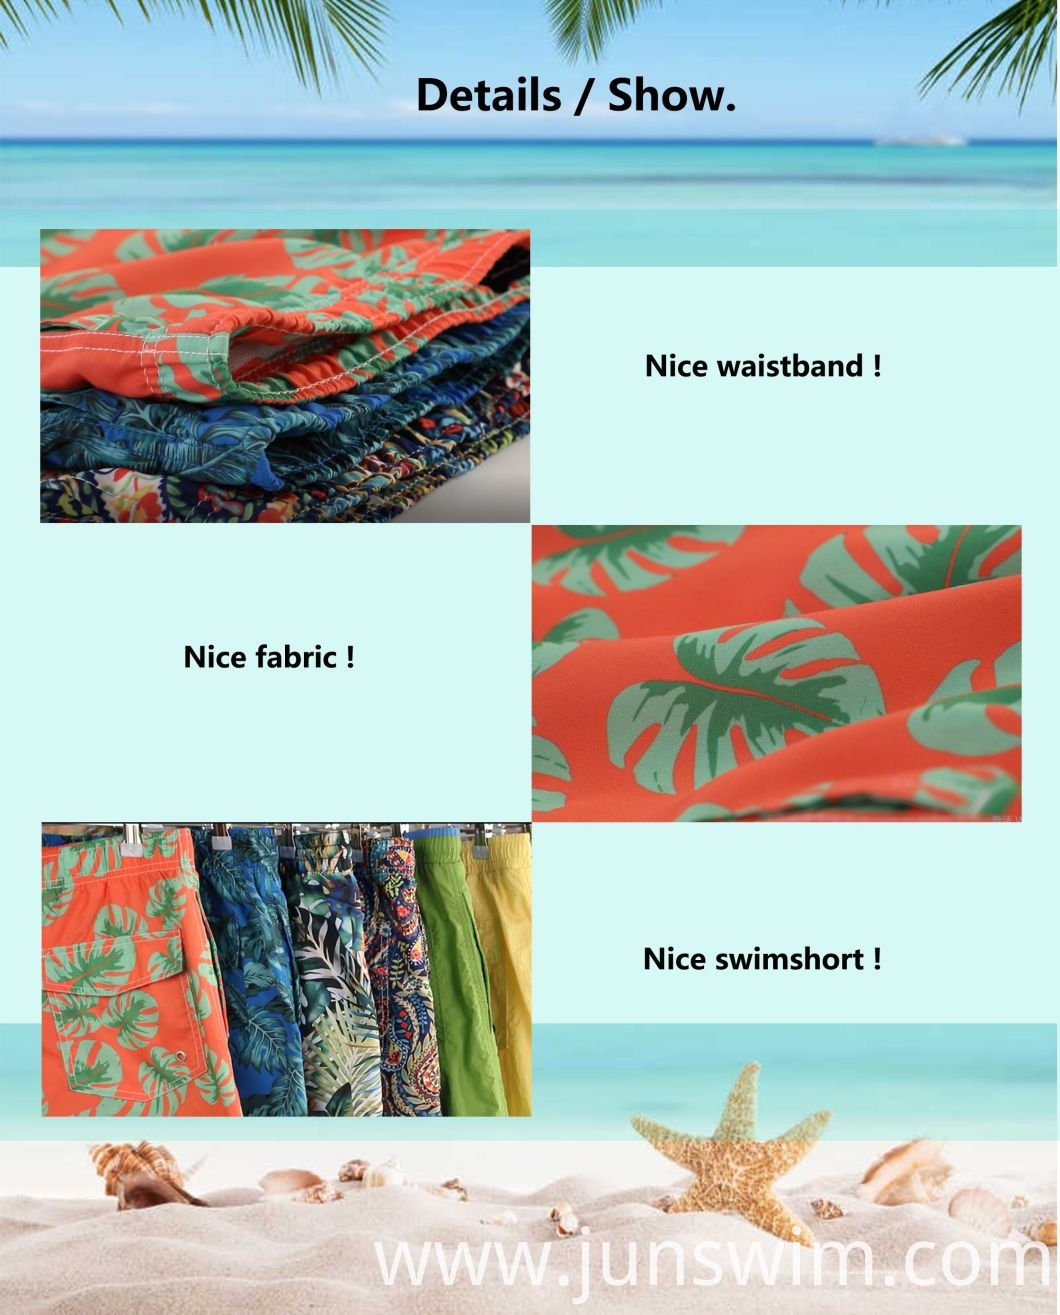 4way Stretch Fabric 190GSM Digital Print with Contrast Color Fitted Waistband for Swim Quick Dry Water Repellent Man's Swimming Short Boardshort